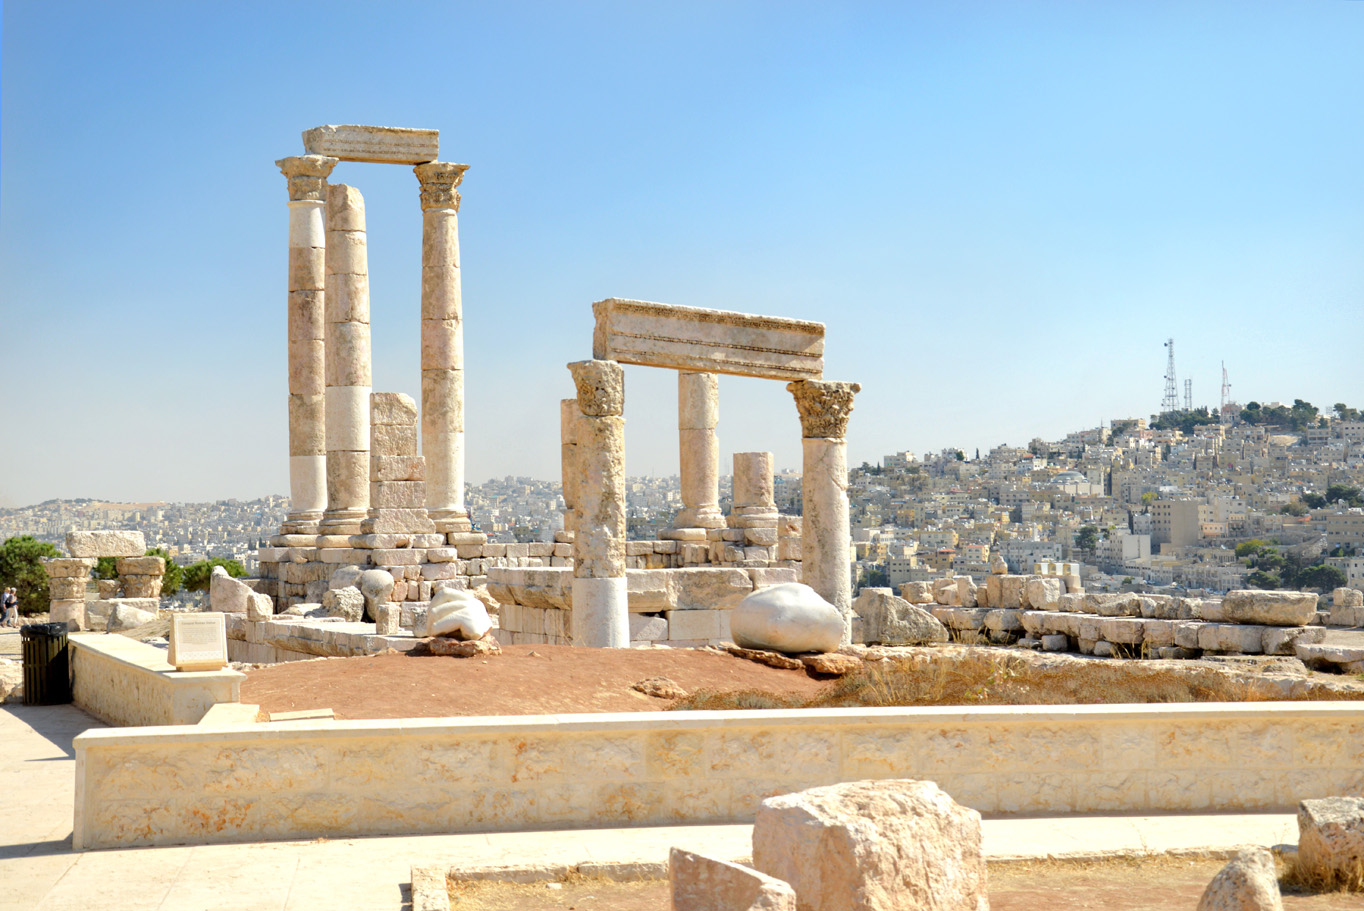 tanie trampki tak tanio Data wydania: Amman - What To See In The White Capital - Is it safe to ...